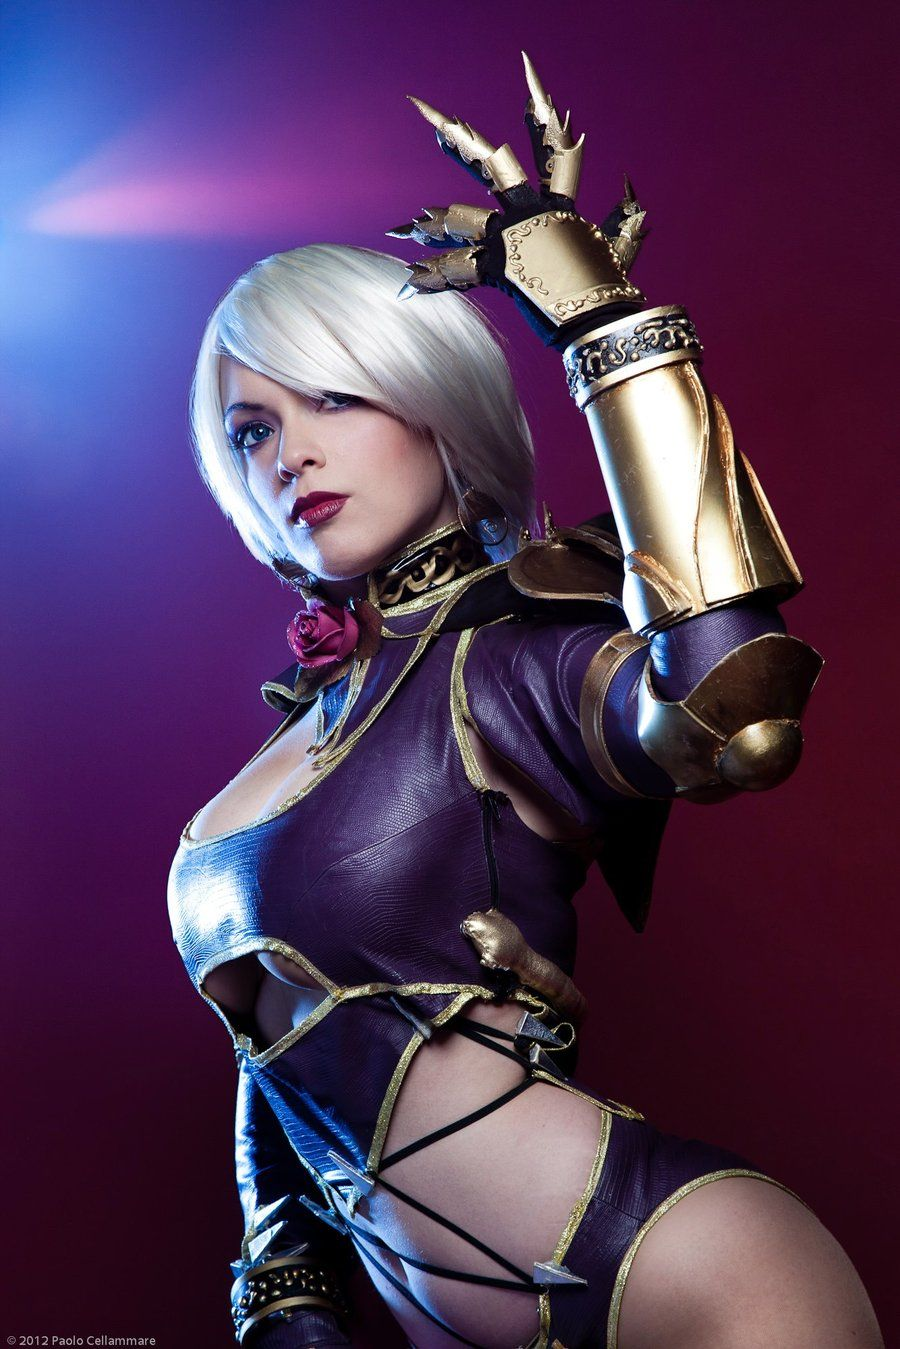 Soul calibur ivy cosplay